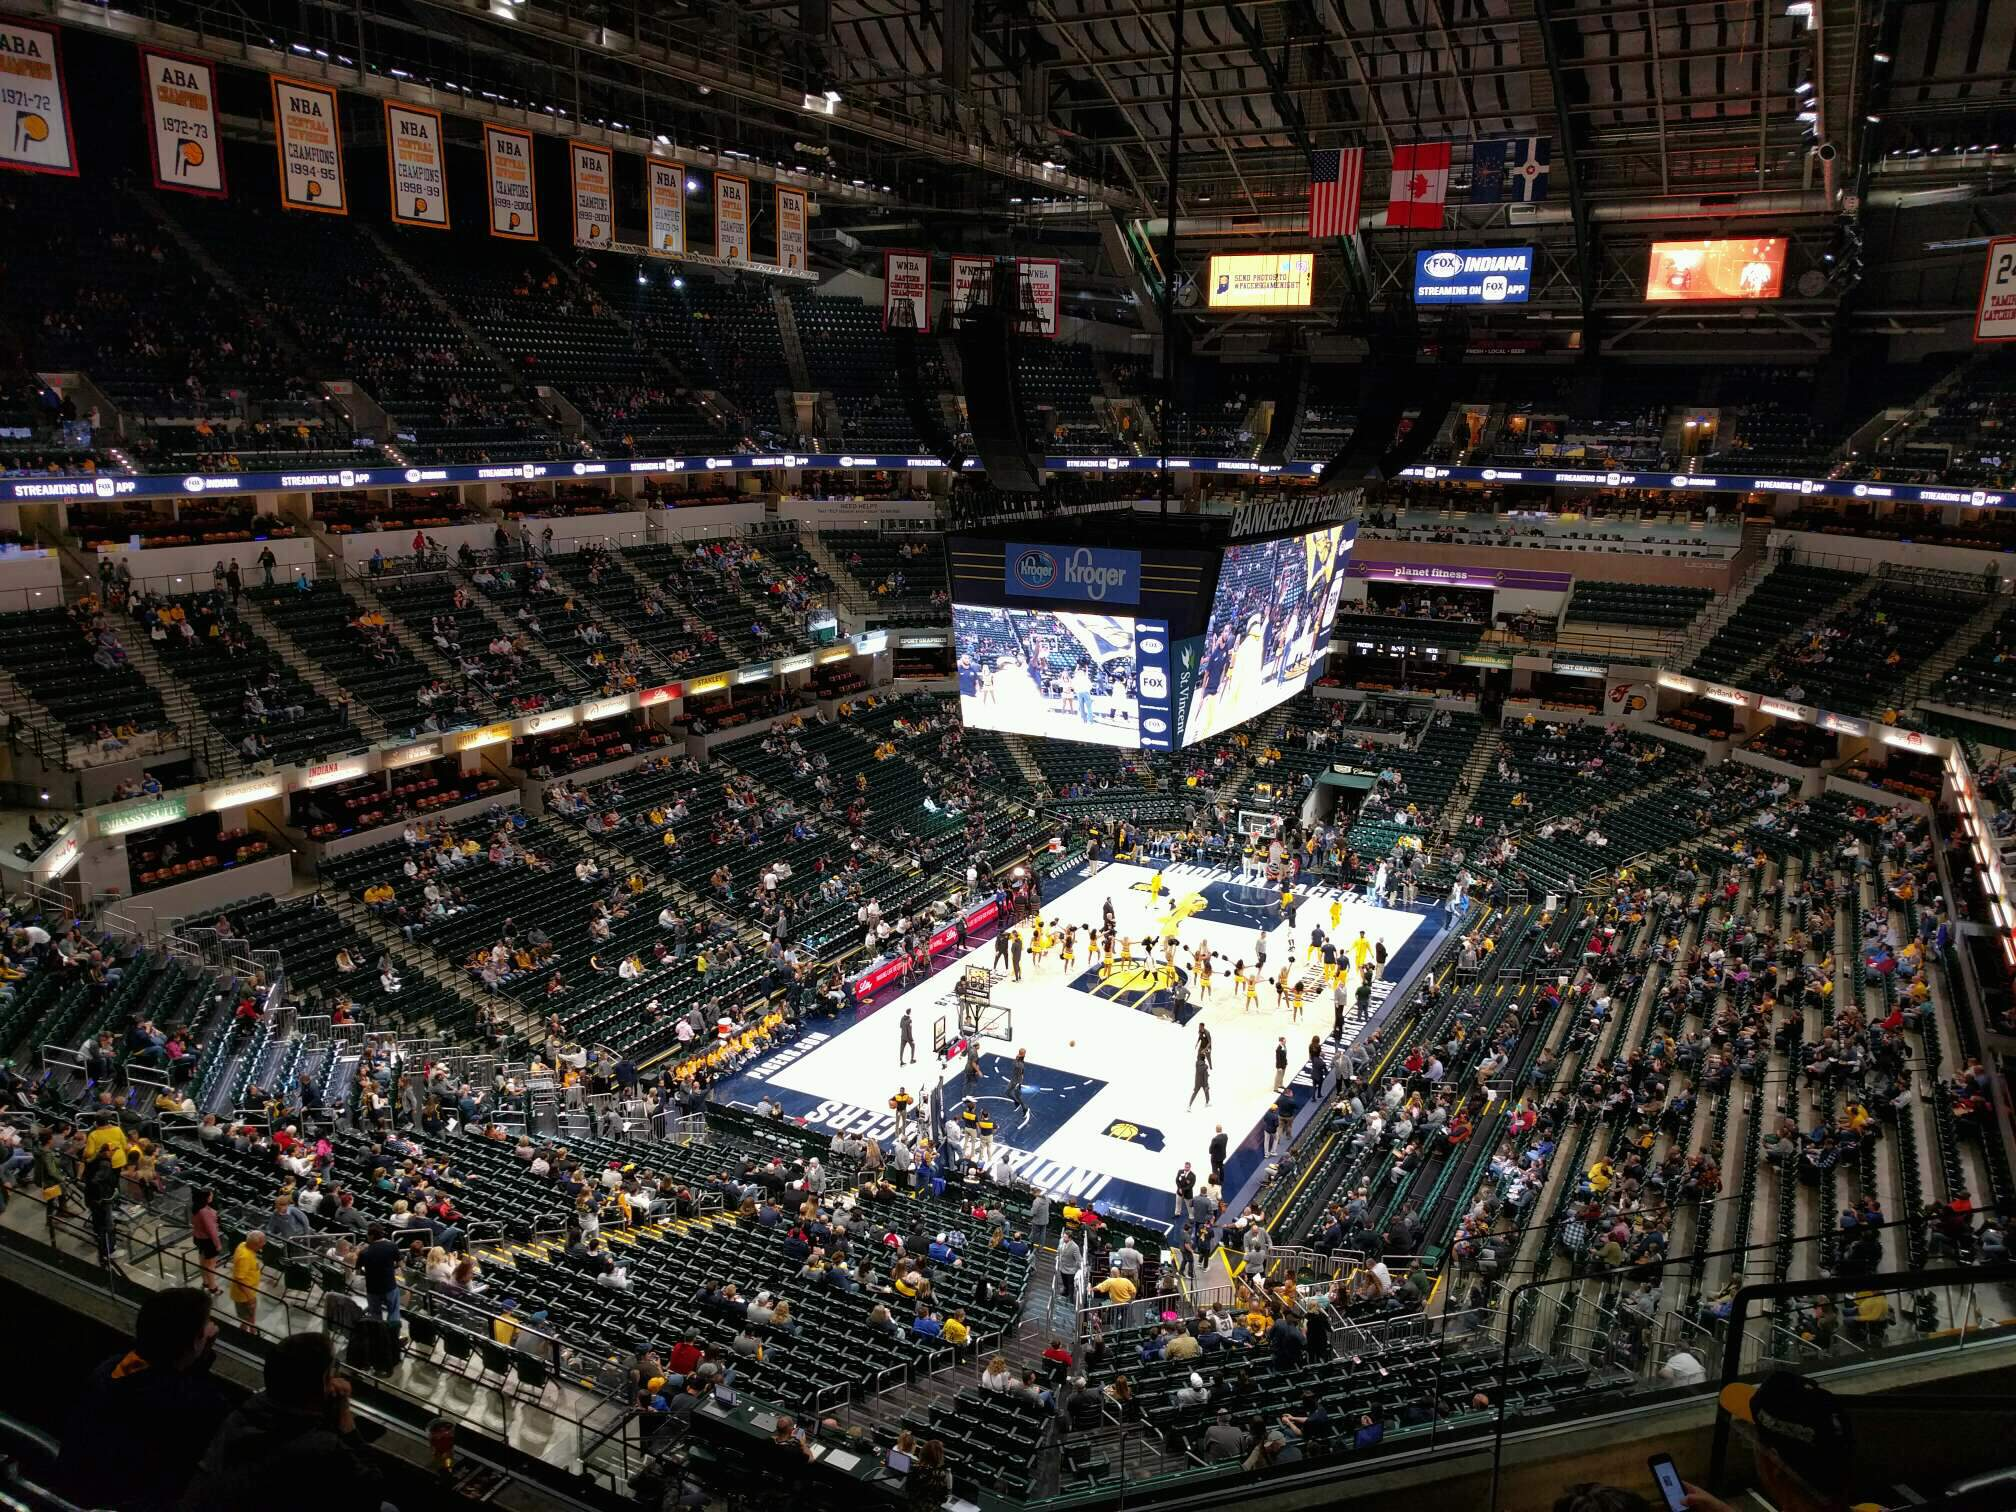 Bankers Life Fieldhouse Section 230 Row 6 Seat 6